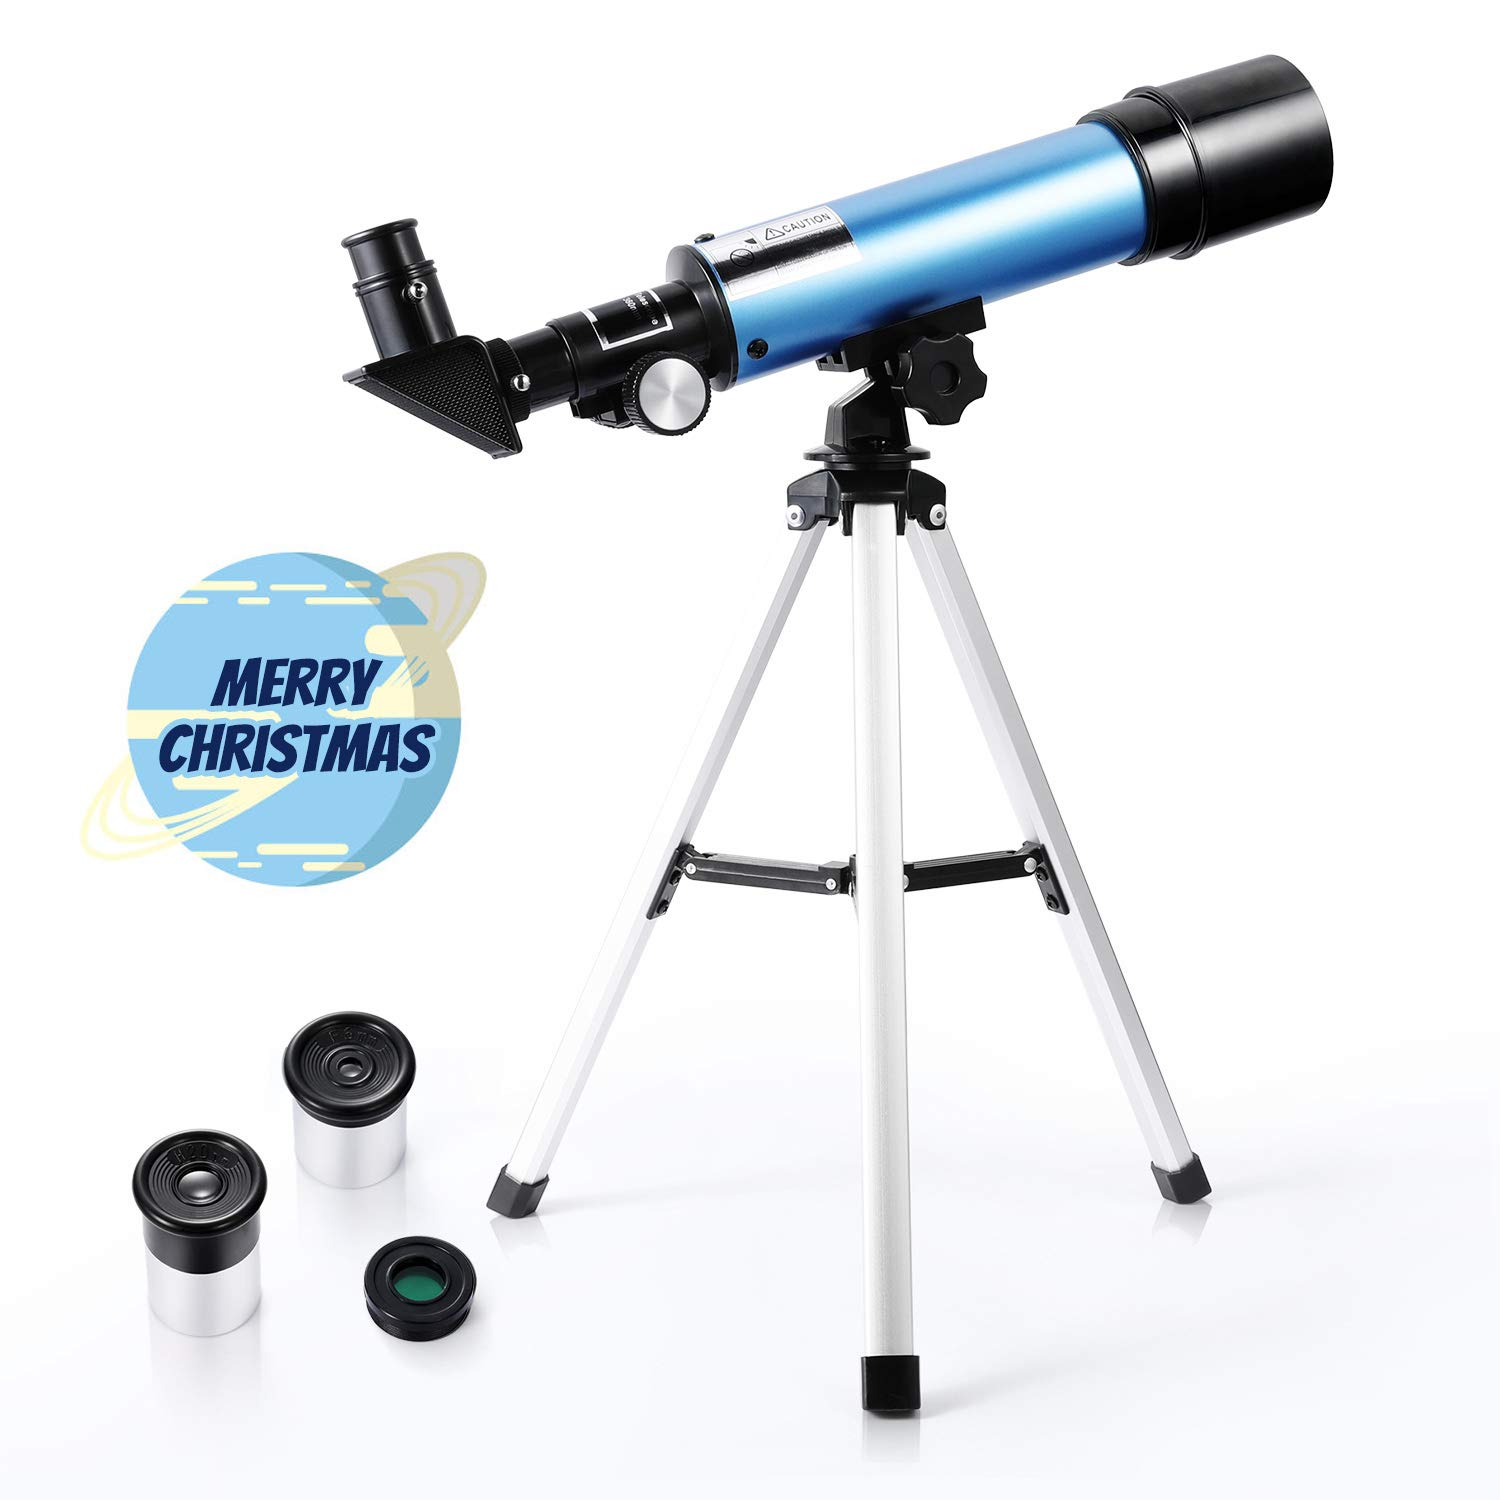 Nice beginner telescope for kids